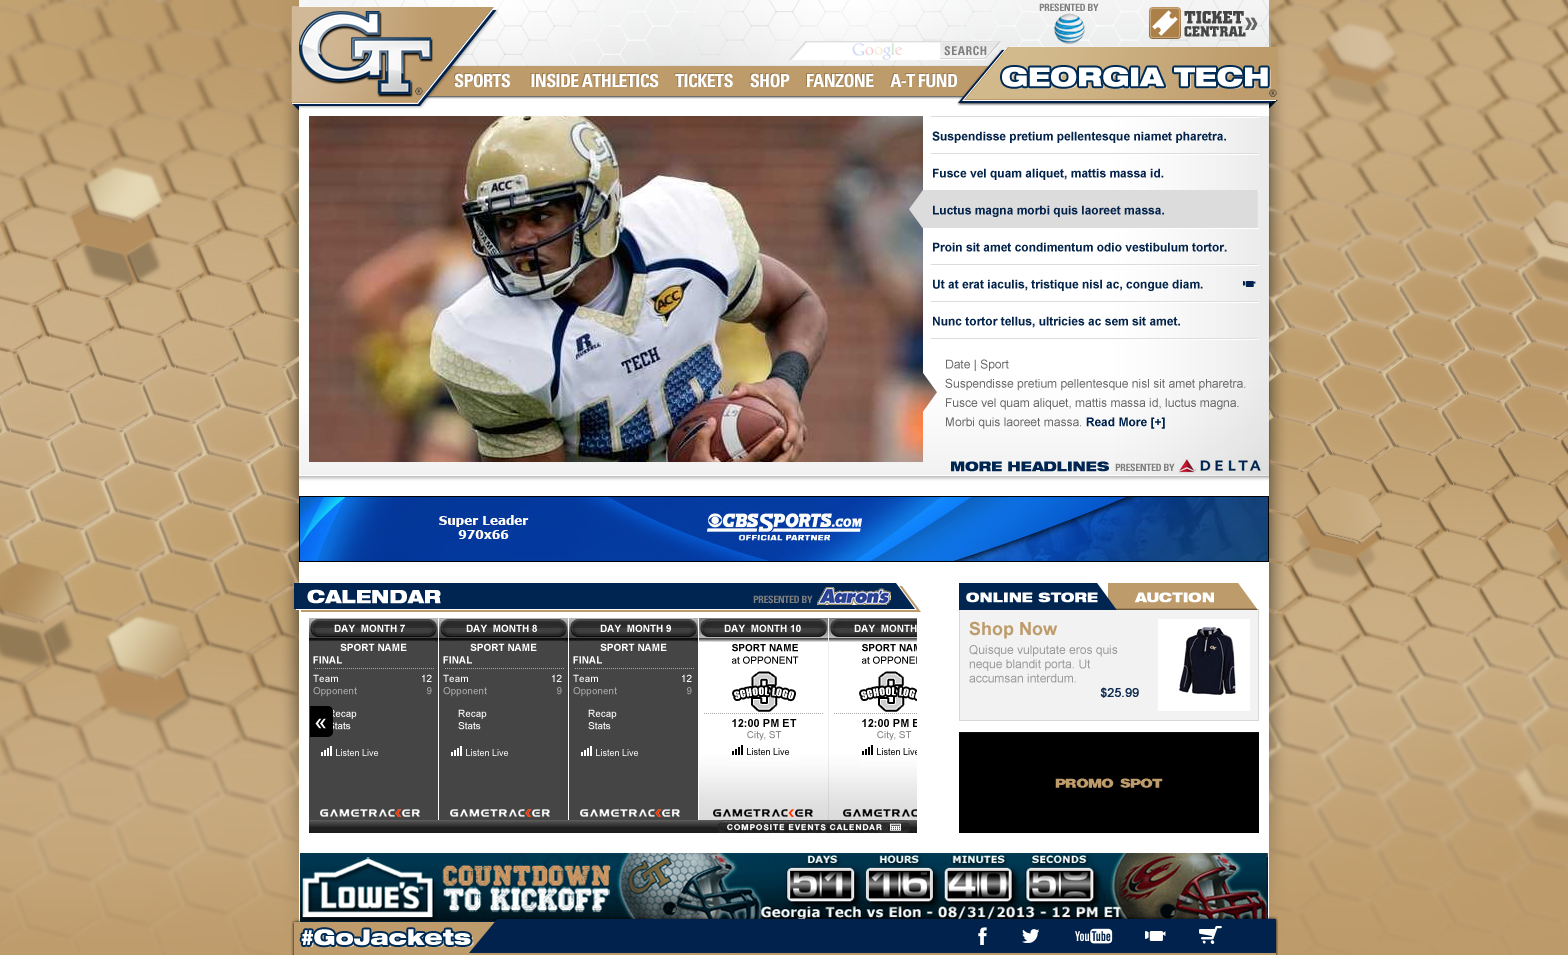 CBS_COLLEGE_SPORTS_-_2016-07-05_16.48.39.png